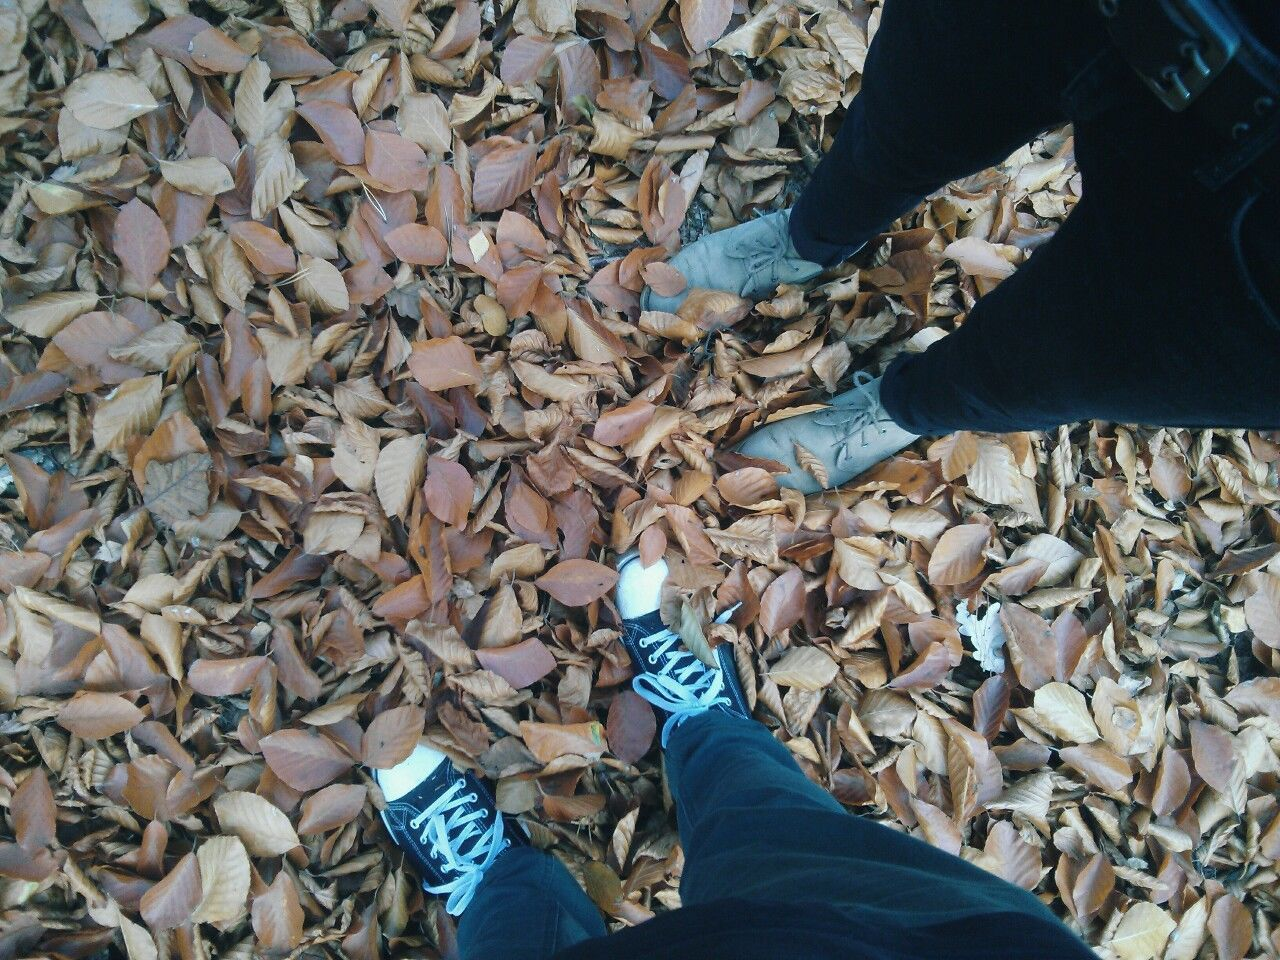 Autumn Carefree Fall Friendship Leaf Leafes Love Partnership Shoe Shoes ♥ Togetherness